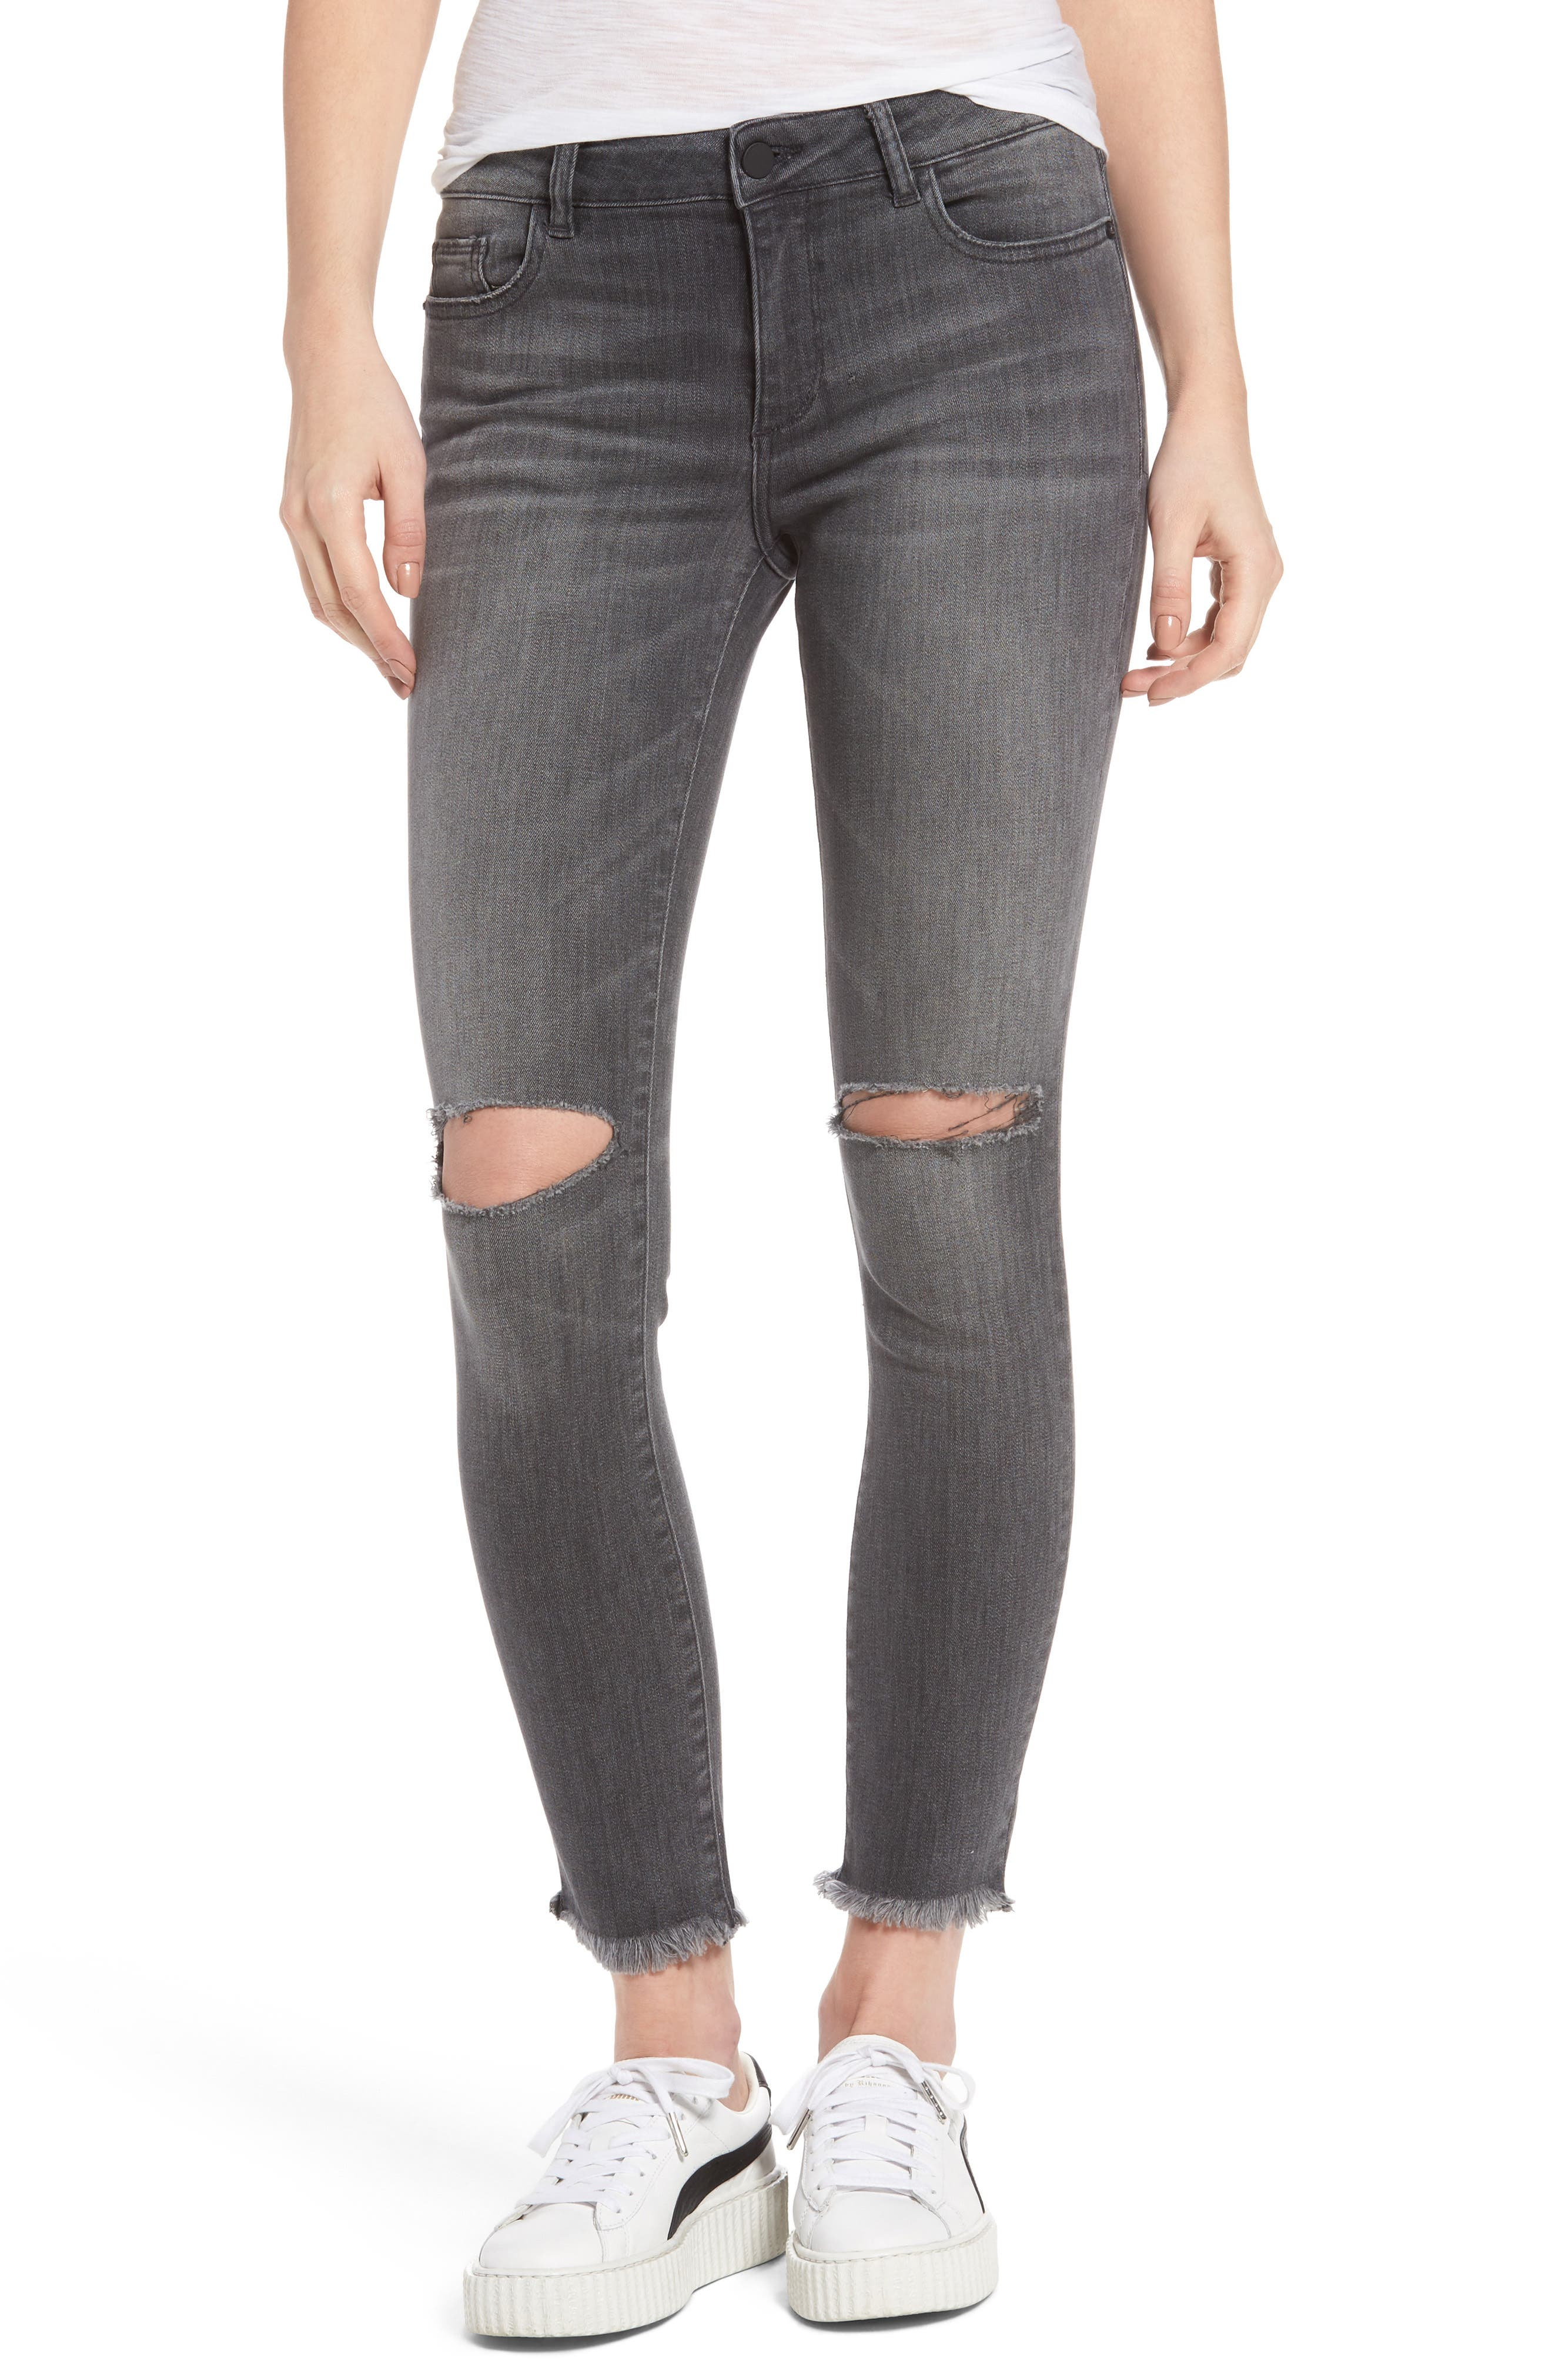 Main Image - DL1961 Margaux Ripped Ankle Skinny Jeans (Quaker)